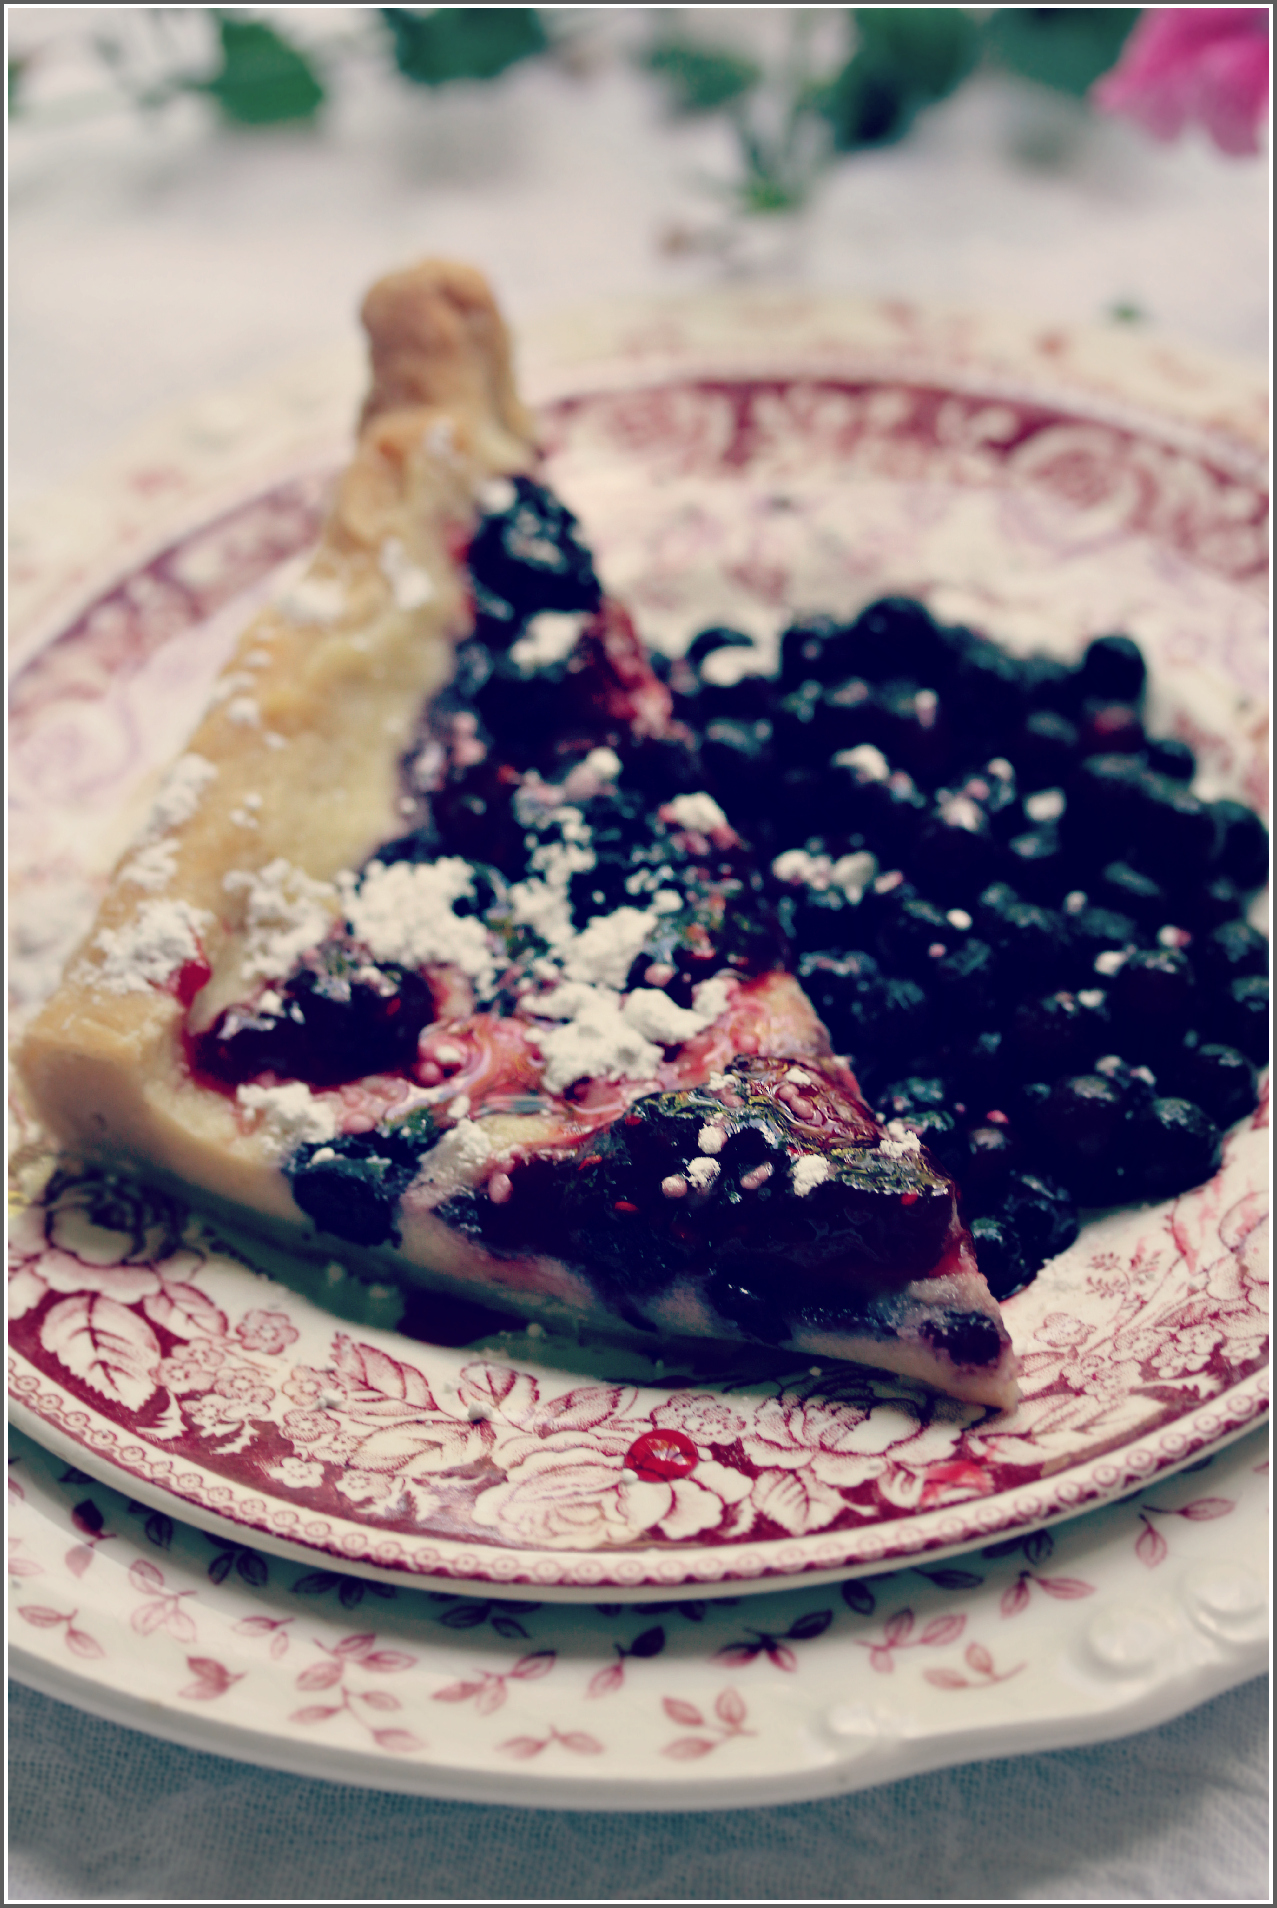 Slice of Semolina and Mixed Berry Tart with Fruit on Side by Dena T Bray©